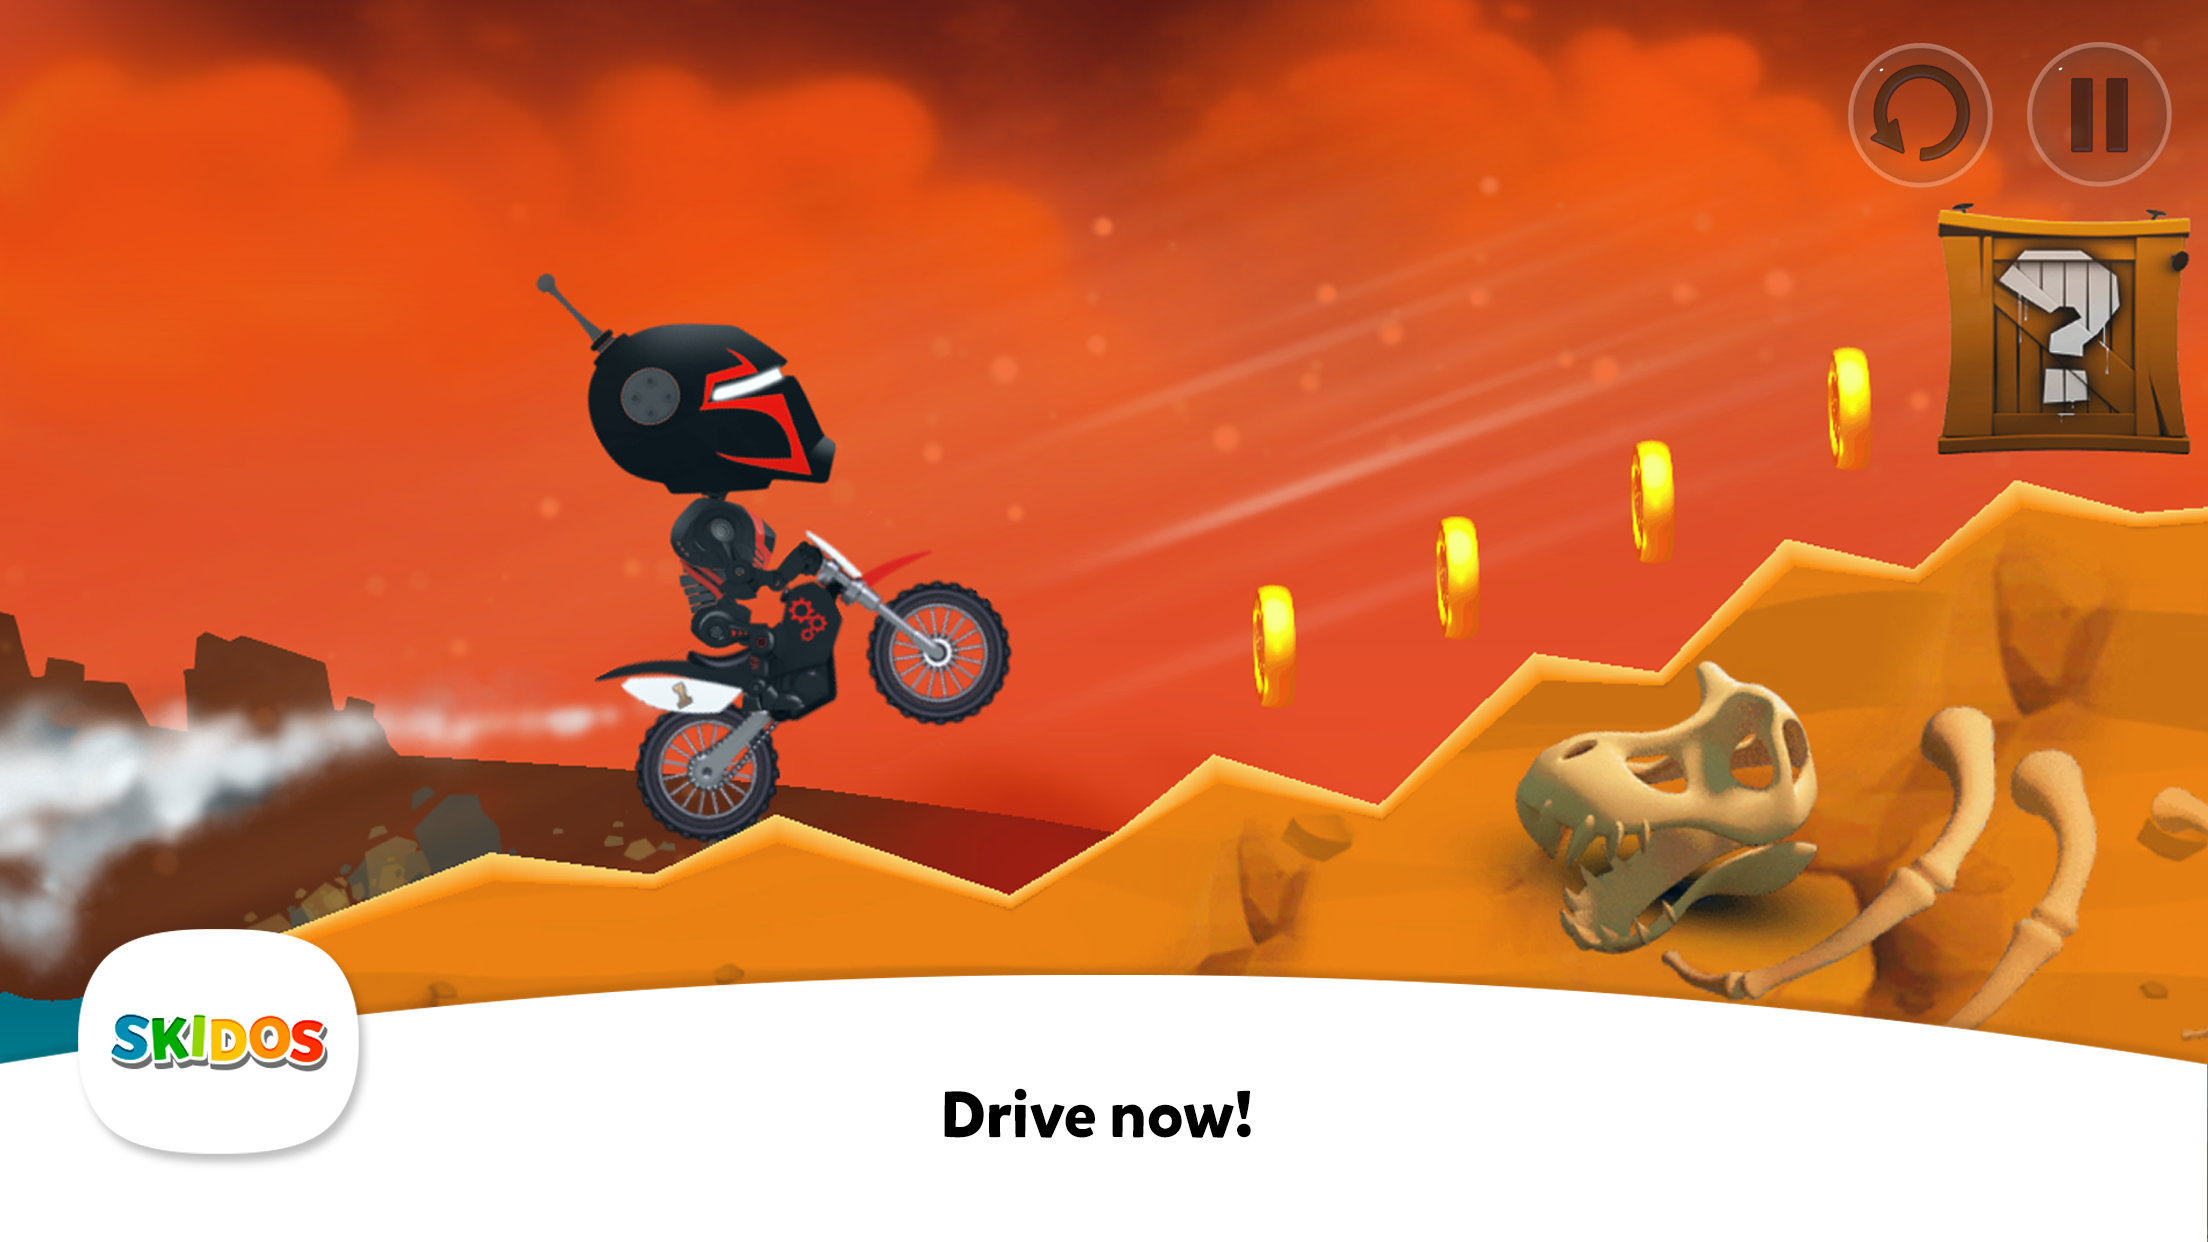 SKIDOS Bike Racing Educational Game